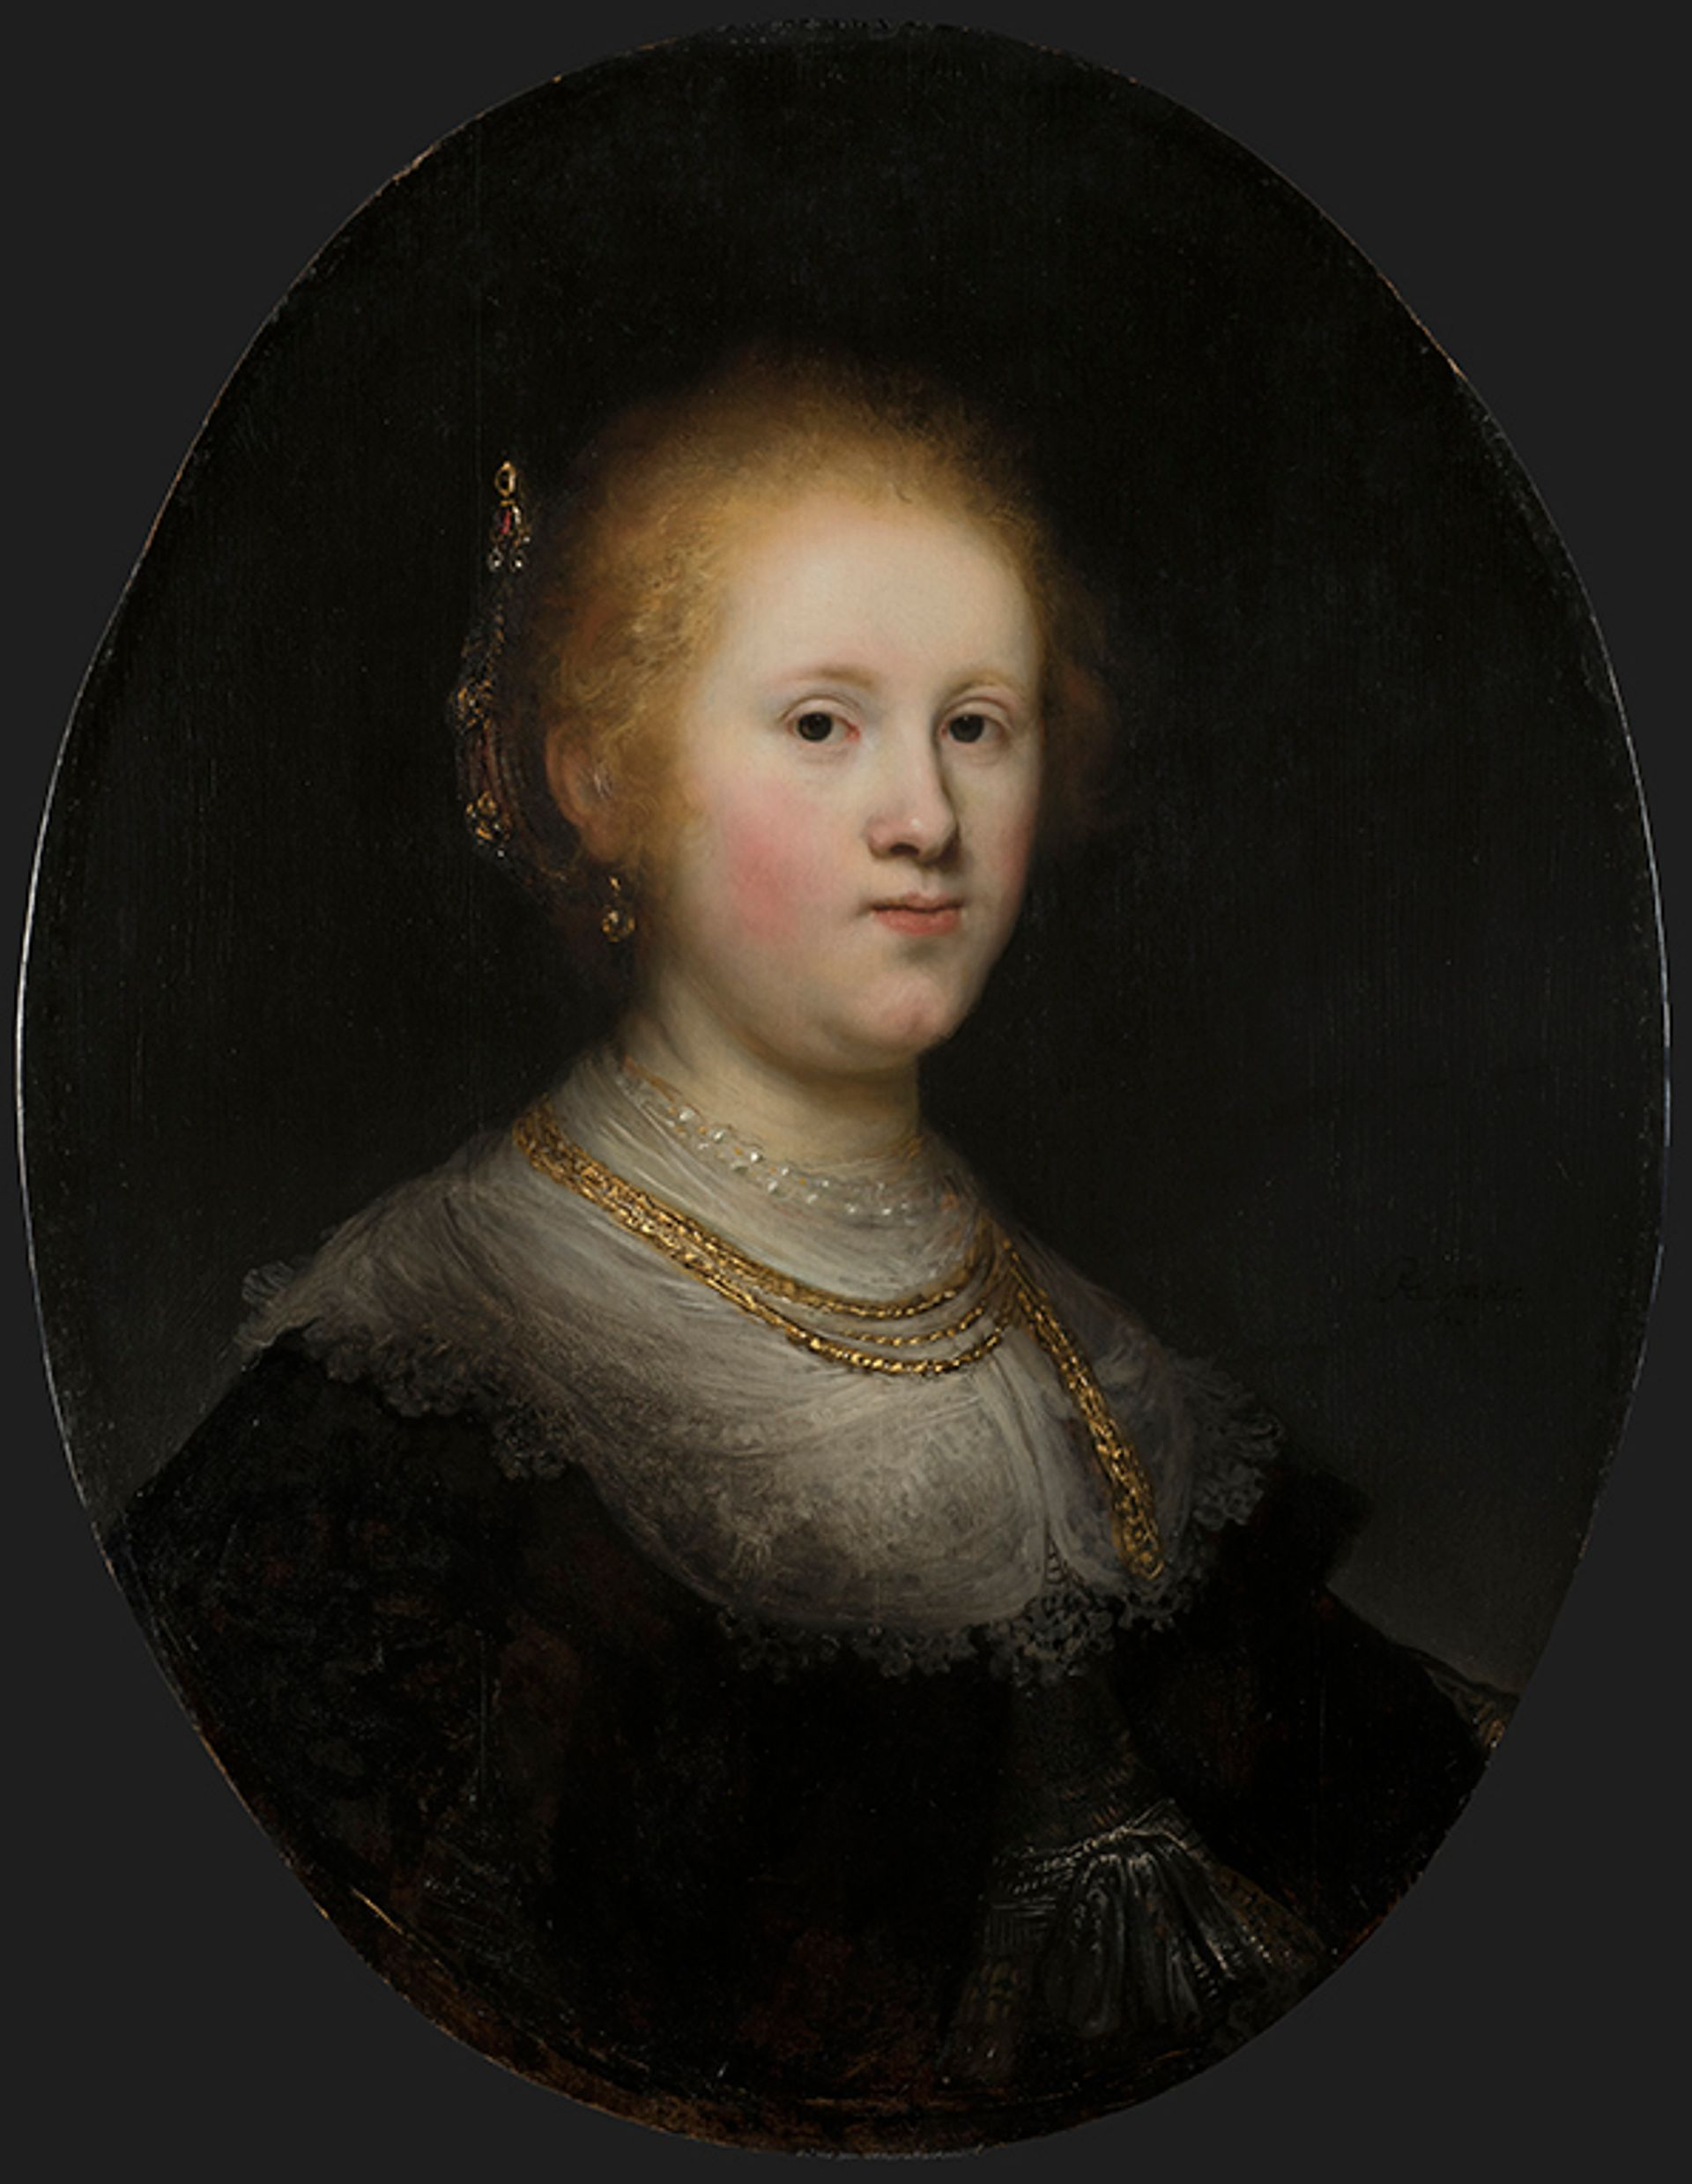 Rembrandt's Portrait of a Young Woman (1632) has gone on view at the Allentown Art Museum Courtesy of the Allentown Art Museum